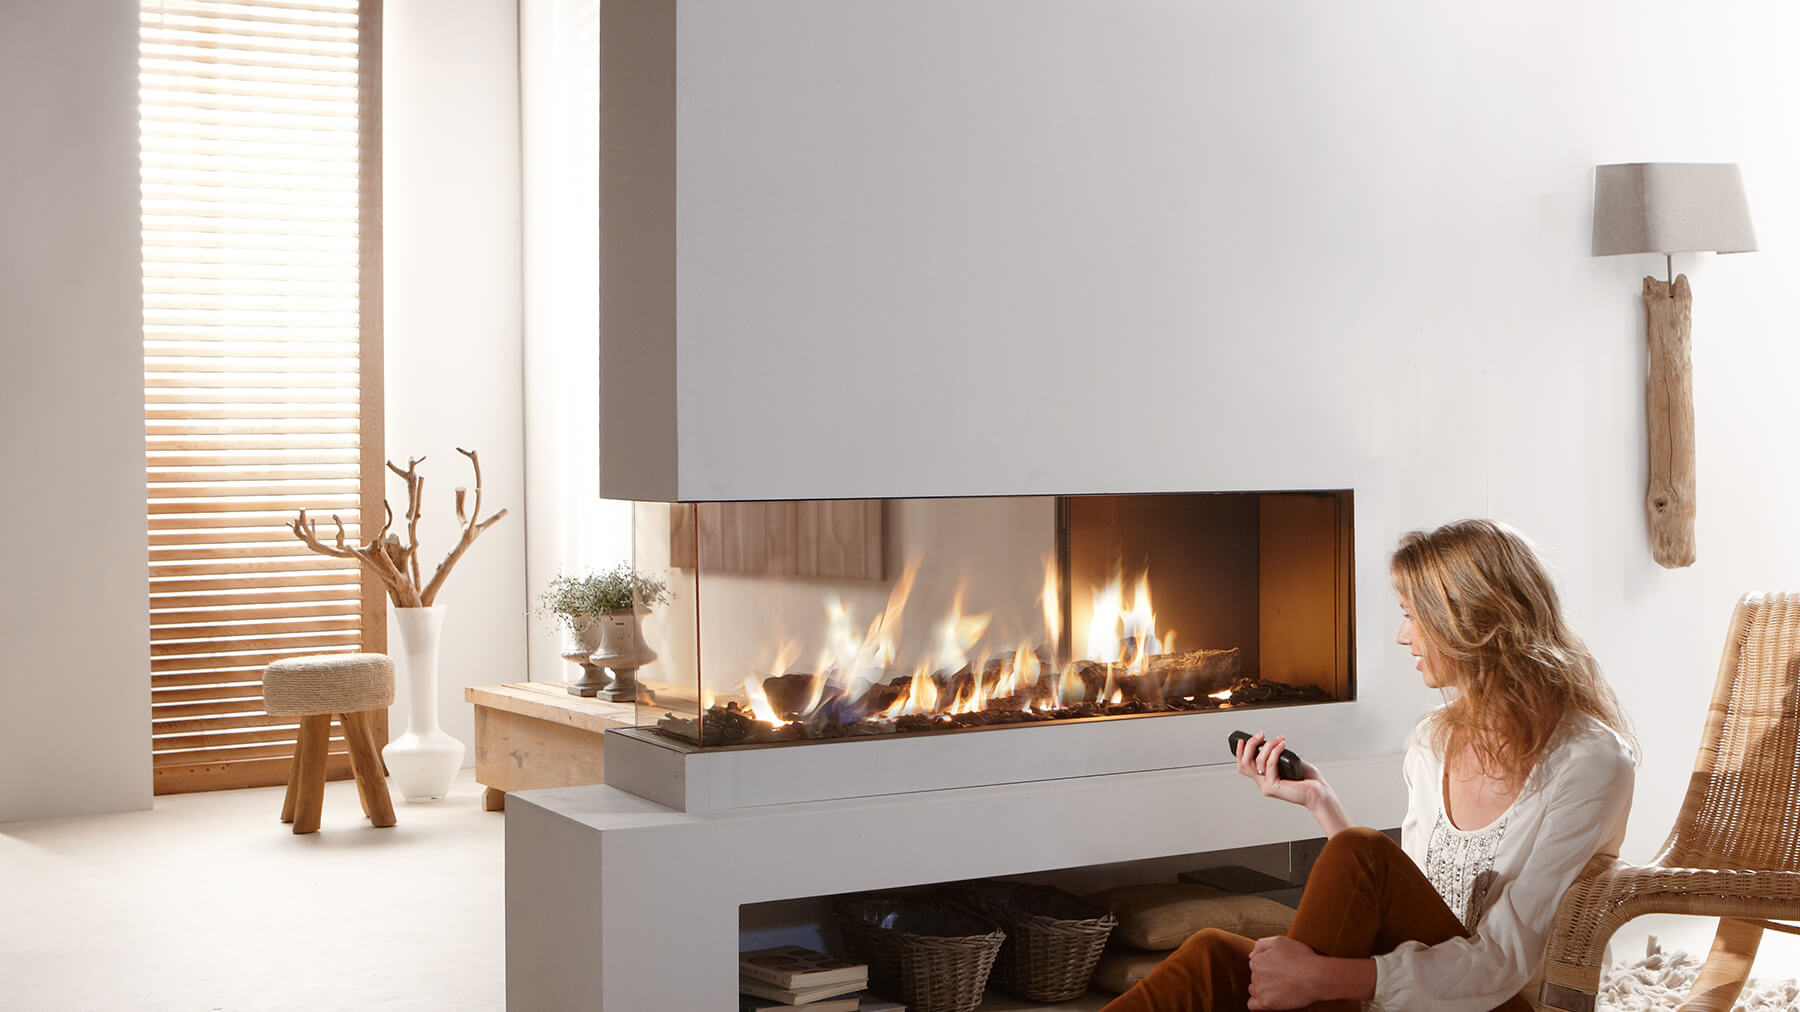 Efficiency of gas fireplace - Treble Sided Gas Fire